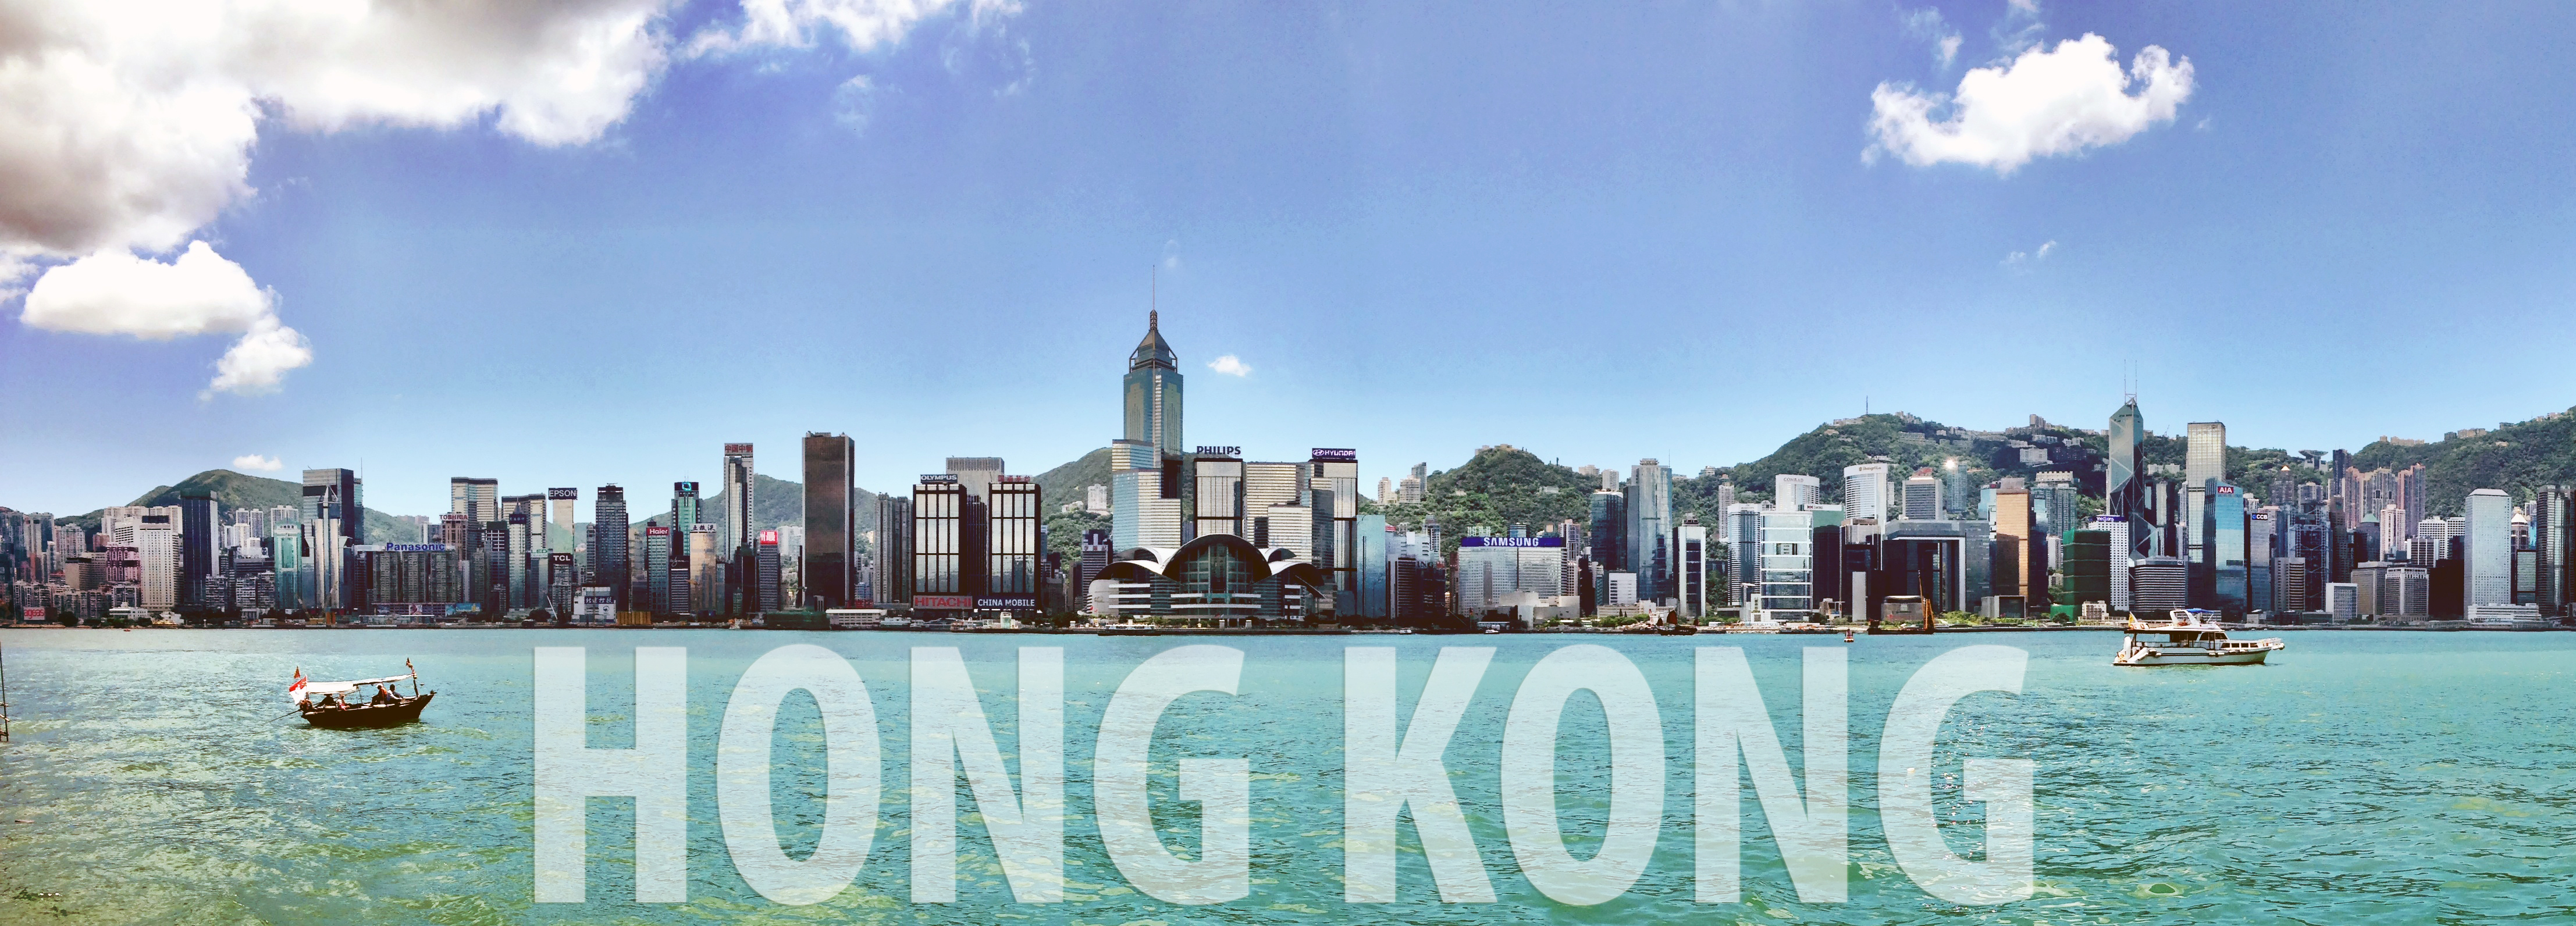 is hong kong an attractive place Hong kong comprises of three main regions: hong kong island, kowloon and new territories there are heaps of popular tourist attractions and places of interest that you can visit in each region there are heaps of popular tourist attractions and places of interest that you can visit in each region.